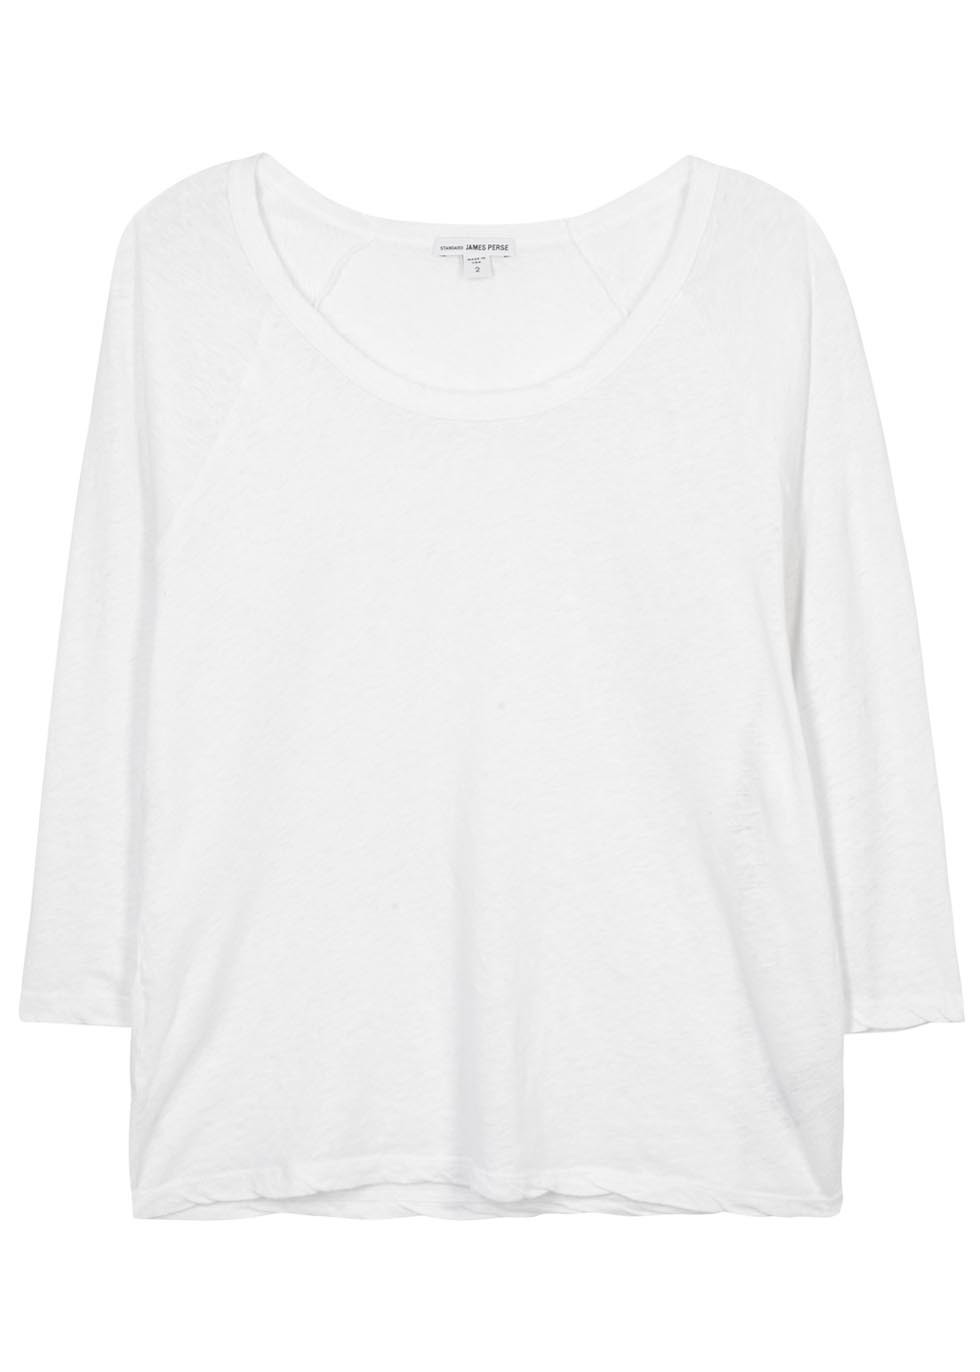 White Slubbed Linen Blend Top - pattern: plain; style: t-shirt; predominant colour: white; occasions: casual; length: standard; neckline: scoop; fibres: linen - mix; fit: loose; sleeve length: 3/4 length; sleeve style: standard; pattern type: fabric; texture group: jersey - stretchy/drapey; season: s/s 2016; wardrobe: basic